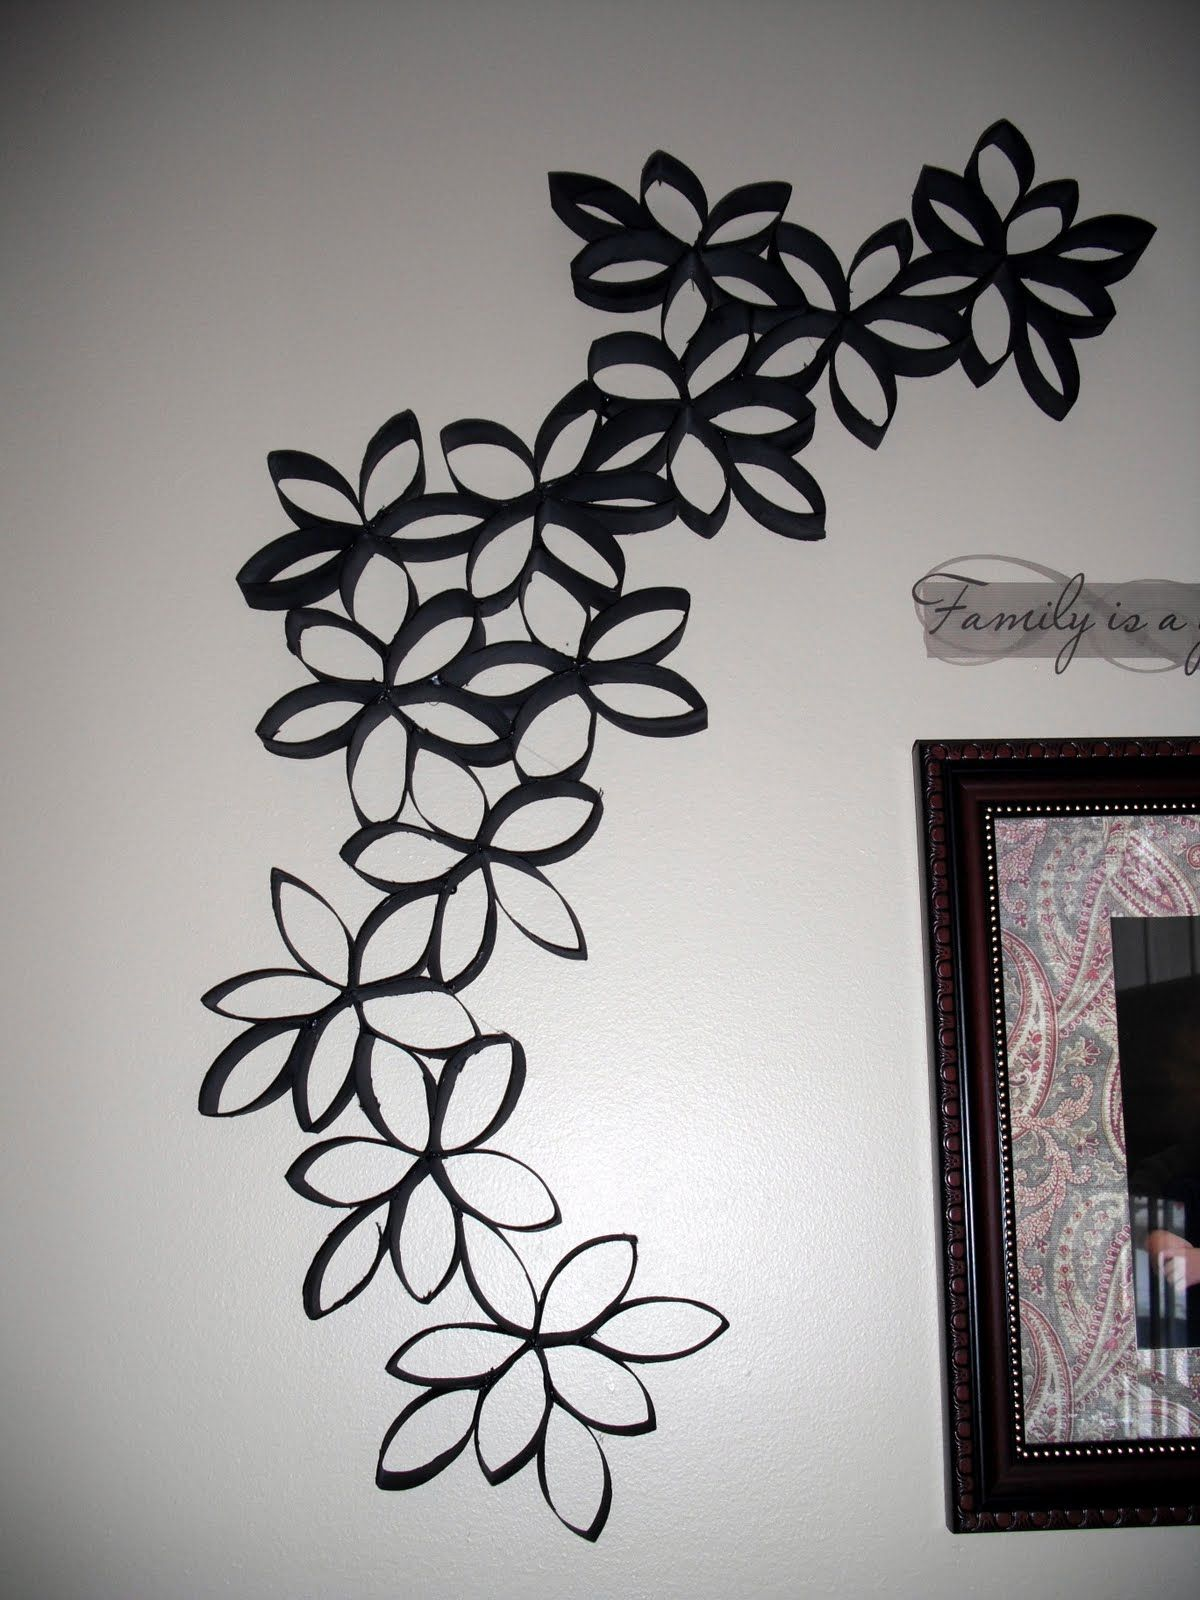 Toilet Paper Roll Wall Art | Cottrell Family: Wall decor ...